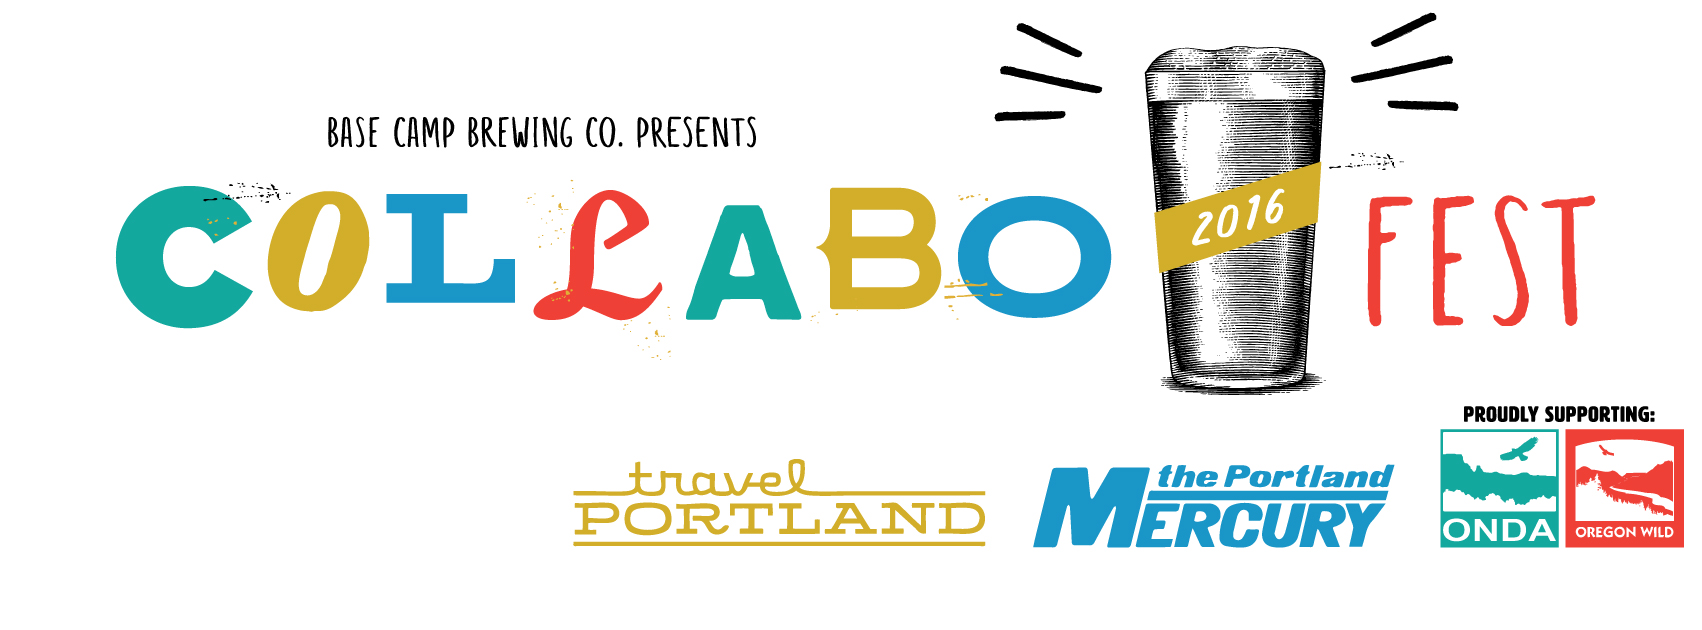 #PDXNOW Presents Base Camp's Collabofest